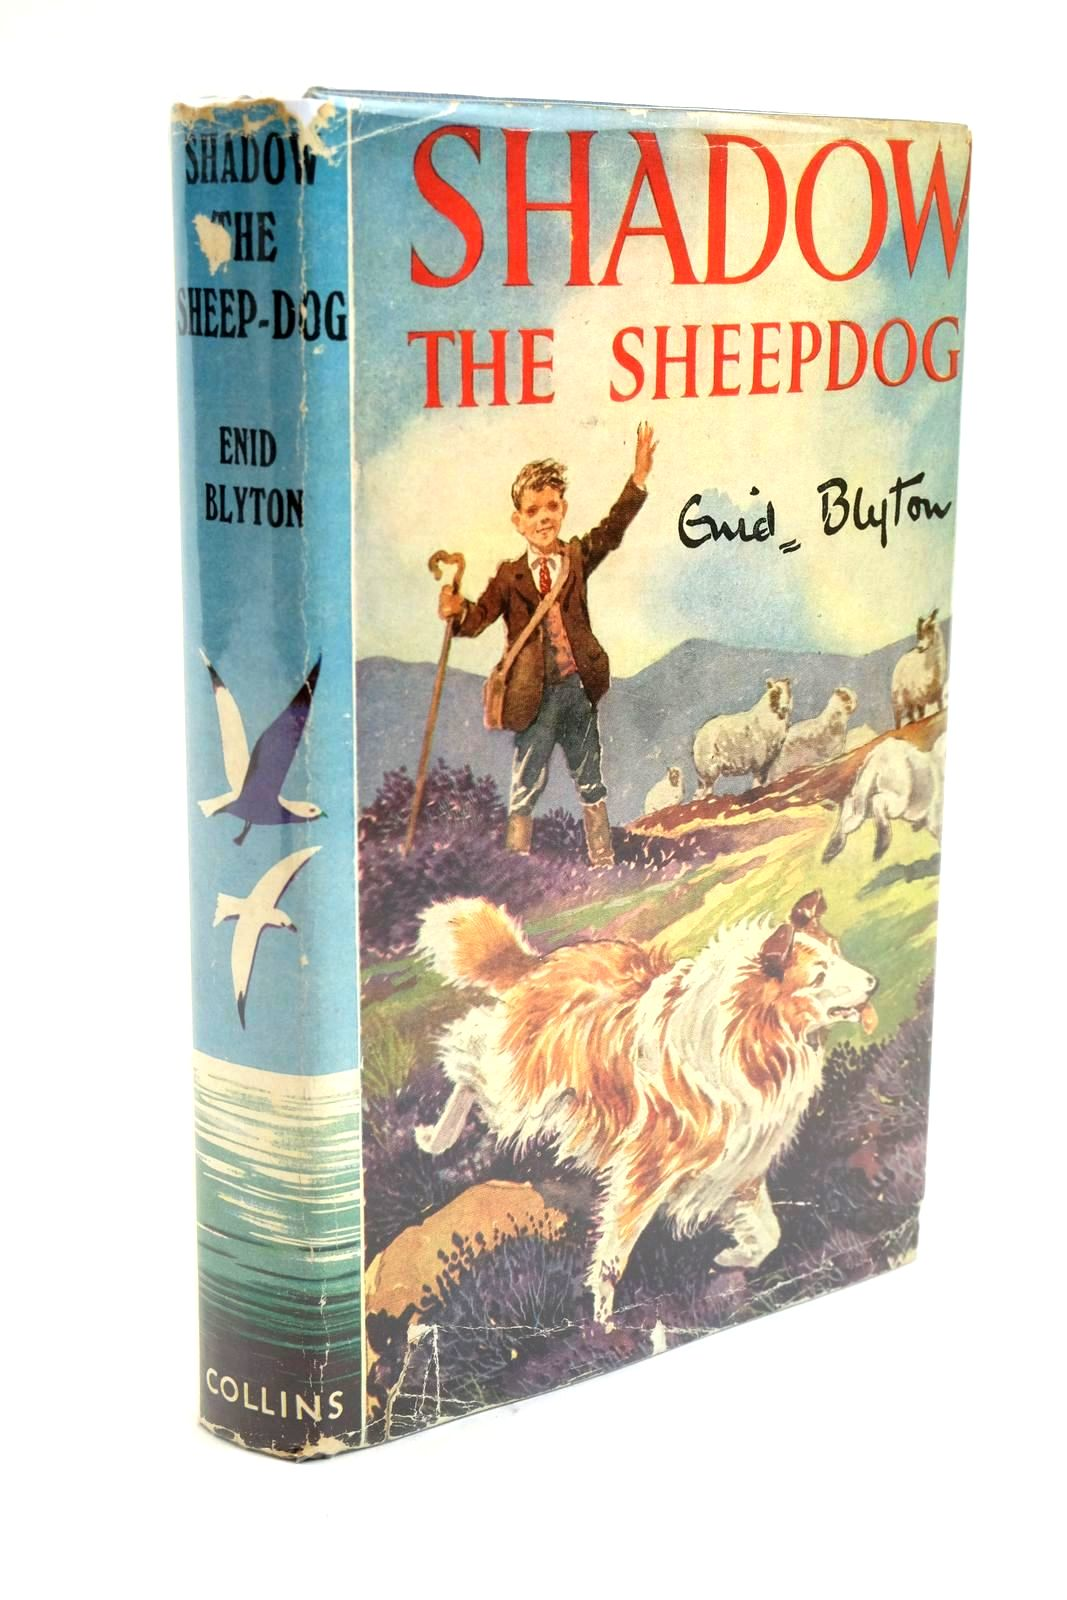 Photo of SHADOW THE SHEEP-DOG written by Blyton, Enid illustrated by Backhouse, G.W. published by Collins (STOCK CODE: 1321700)  for sale by Stella & Rose's Books